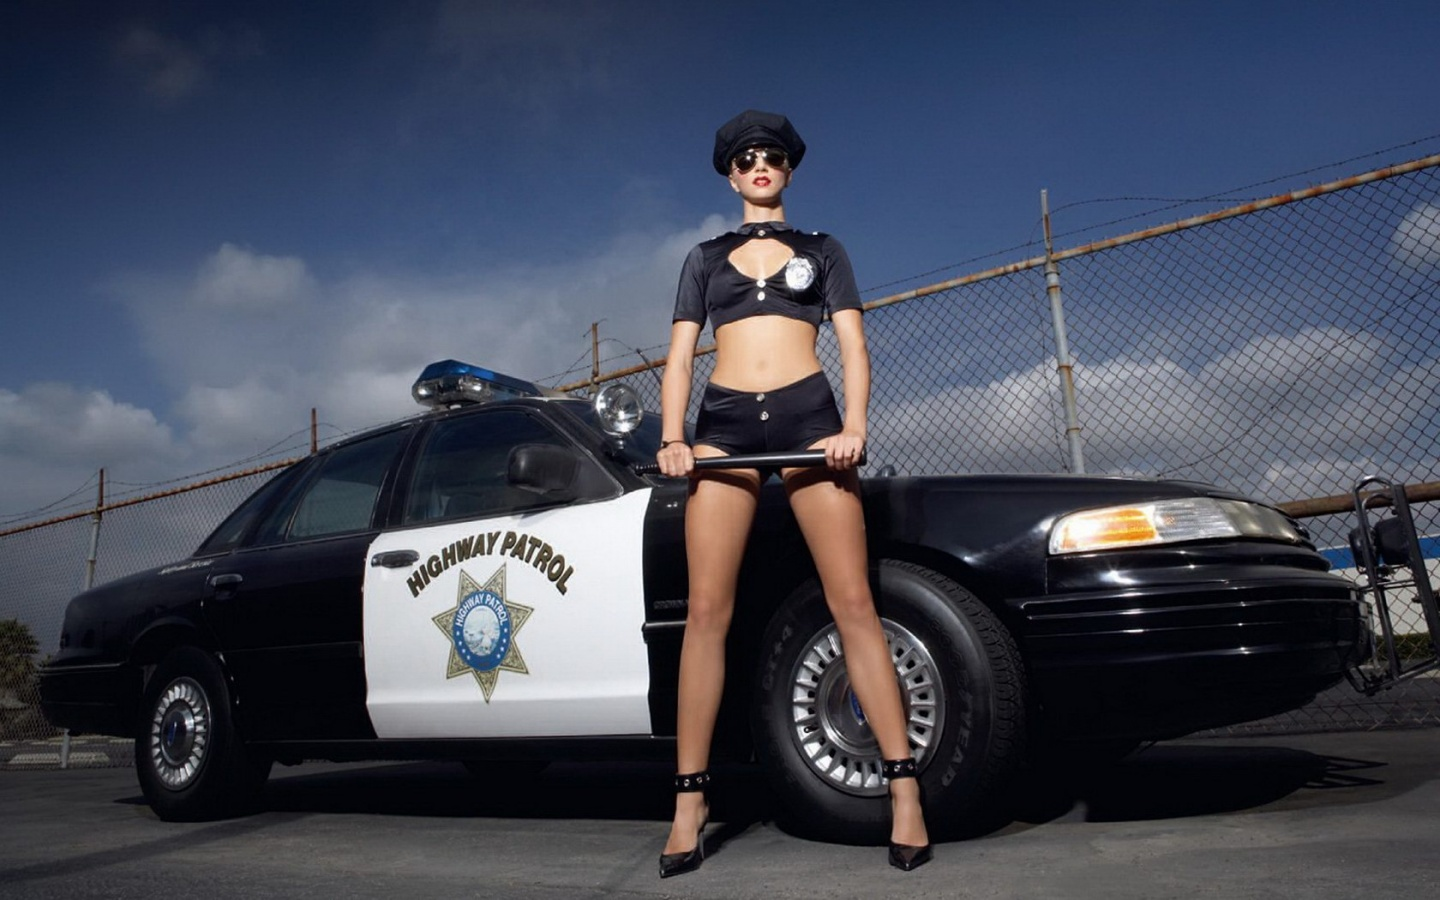 Polizei, sexy, police, dress, uniform, cop, girls, heels, wheels, polizei-Outfit, Bilder, Tuning, Tuning-Polizei